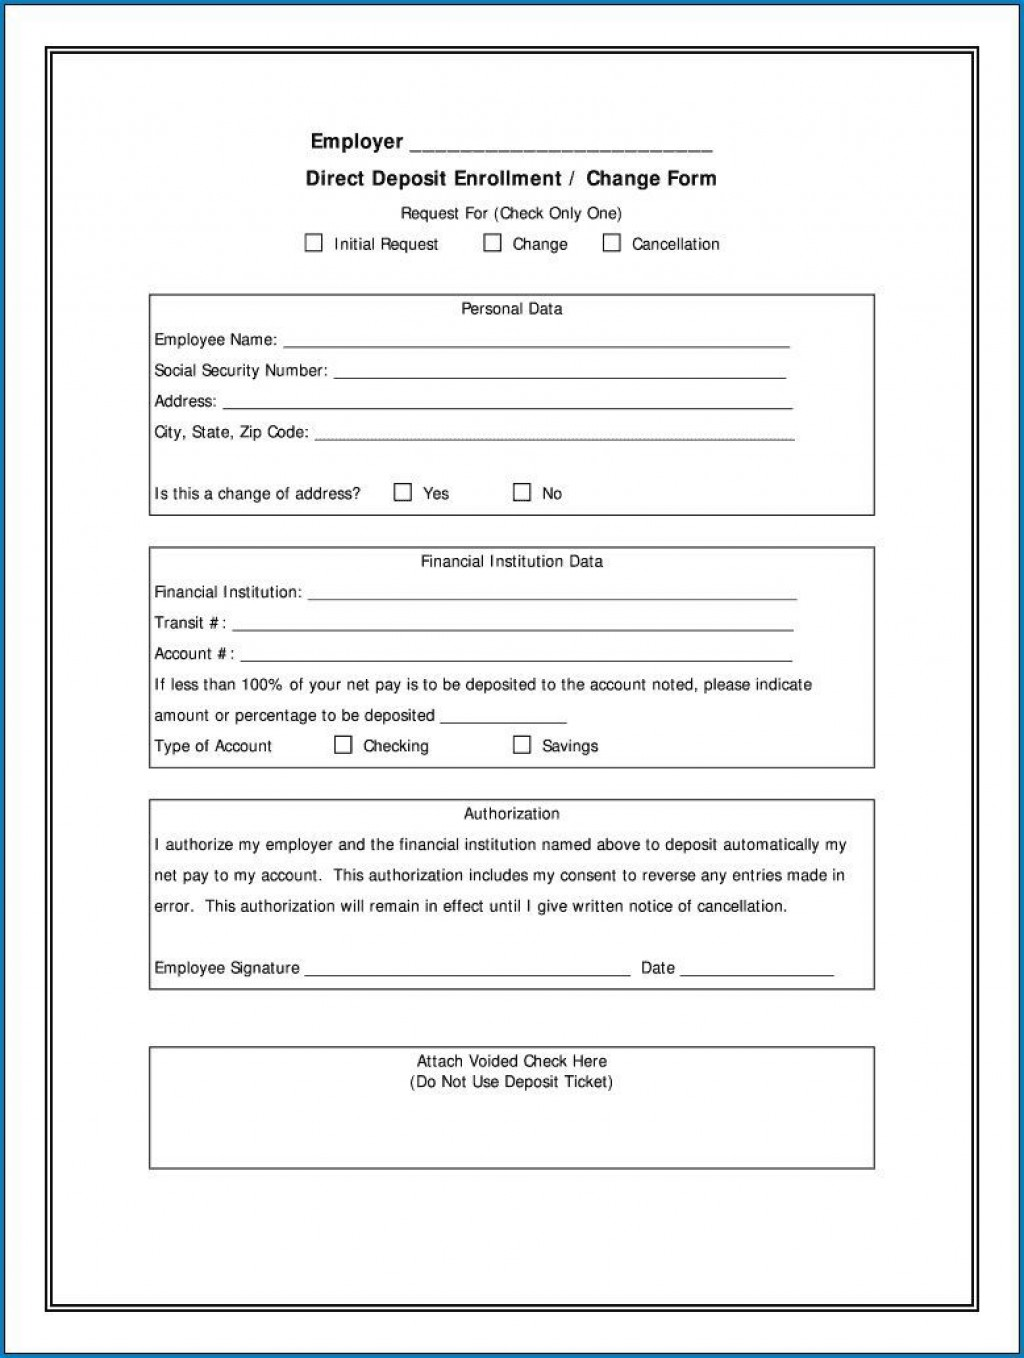 007 Exceptional Direct Deposit Cancellation Form Template Highest Quality  Authorization Canada Word PayrollLarge